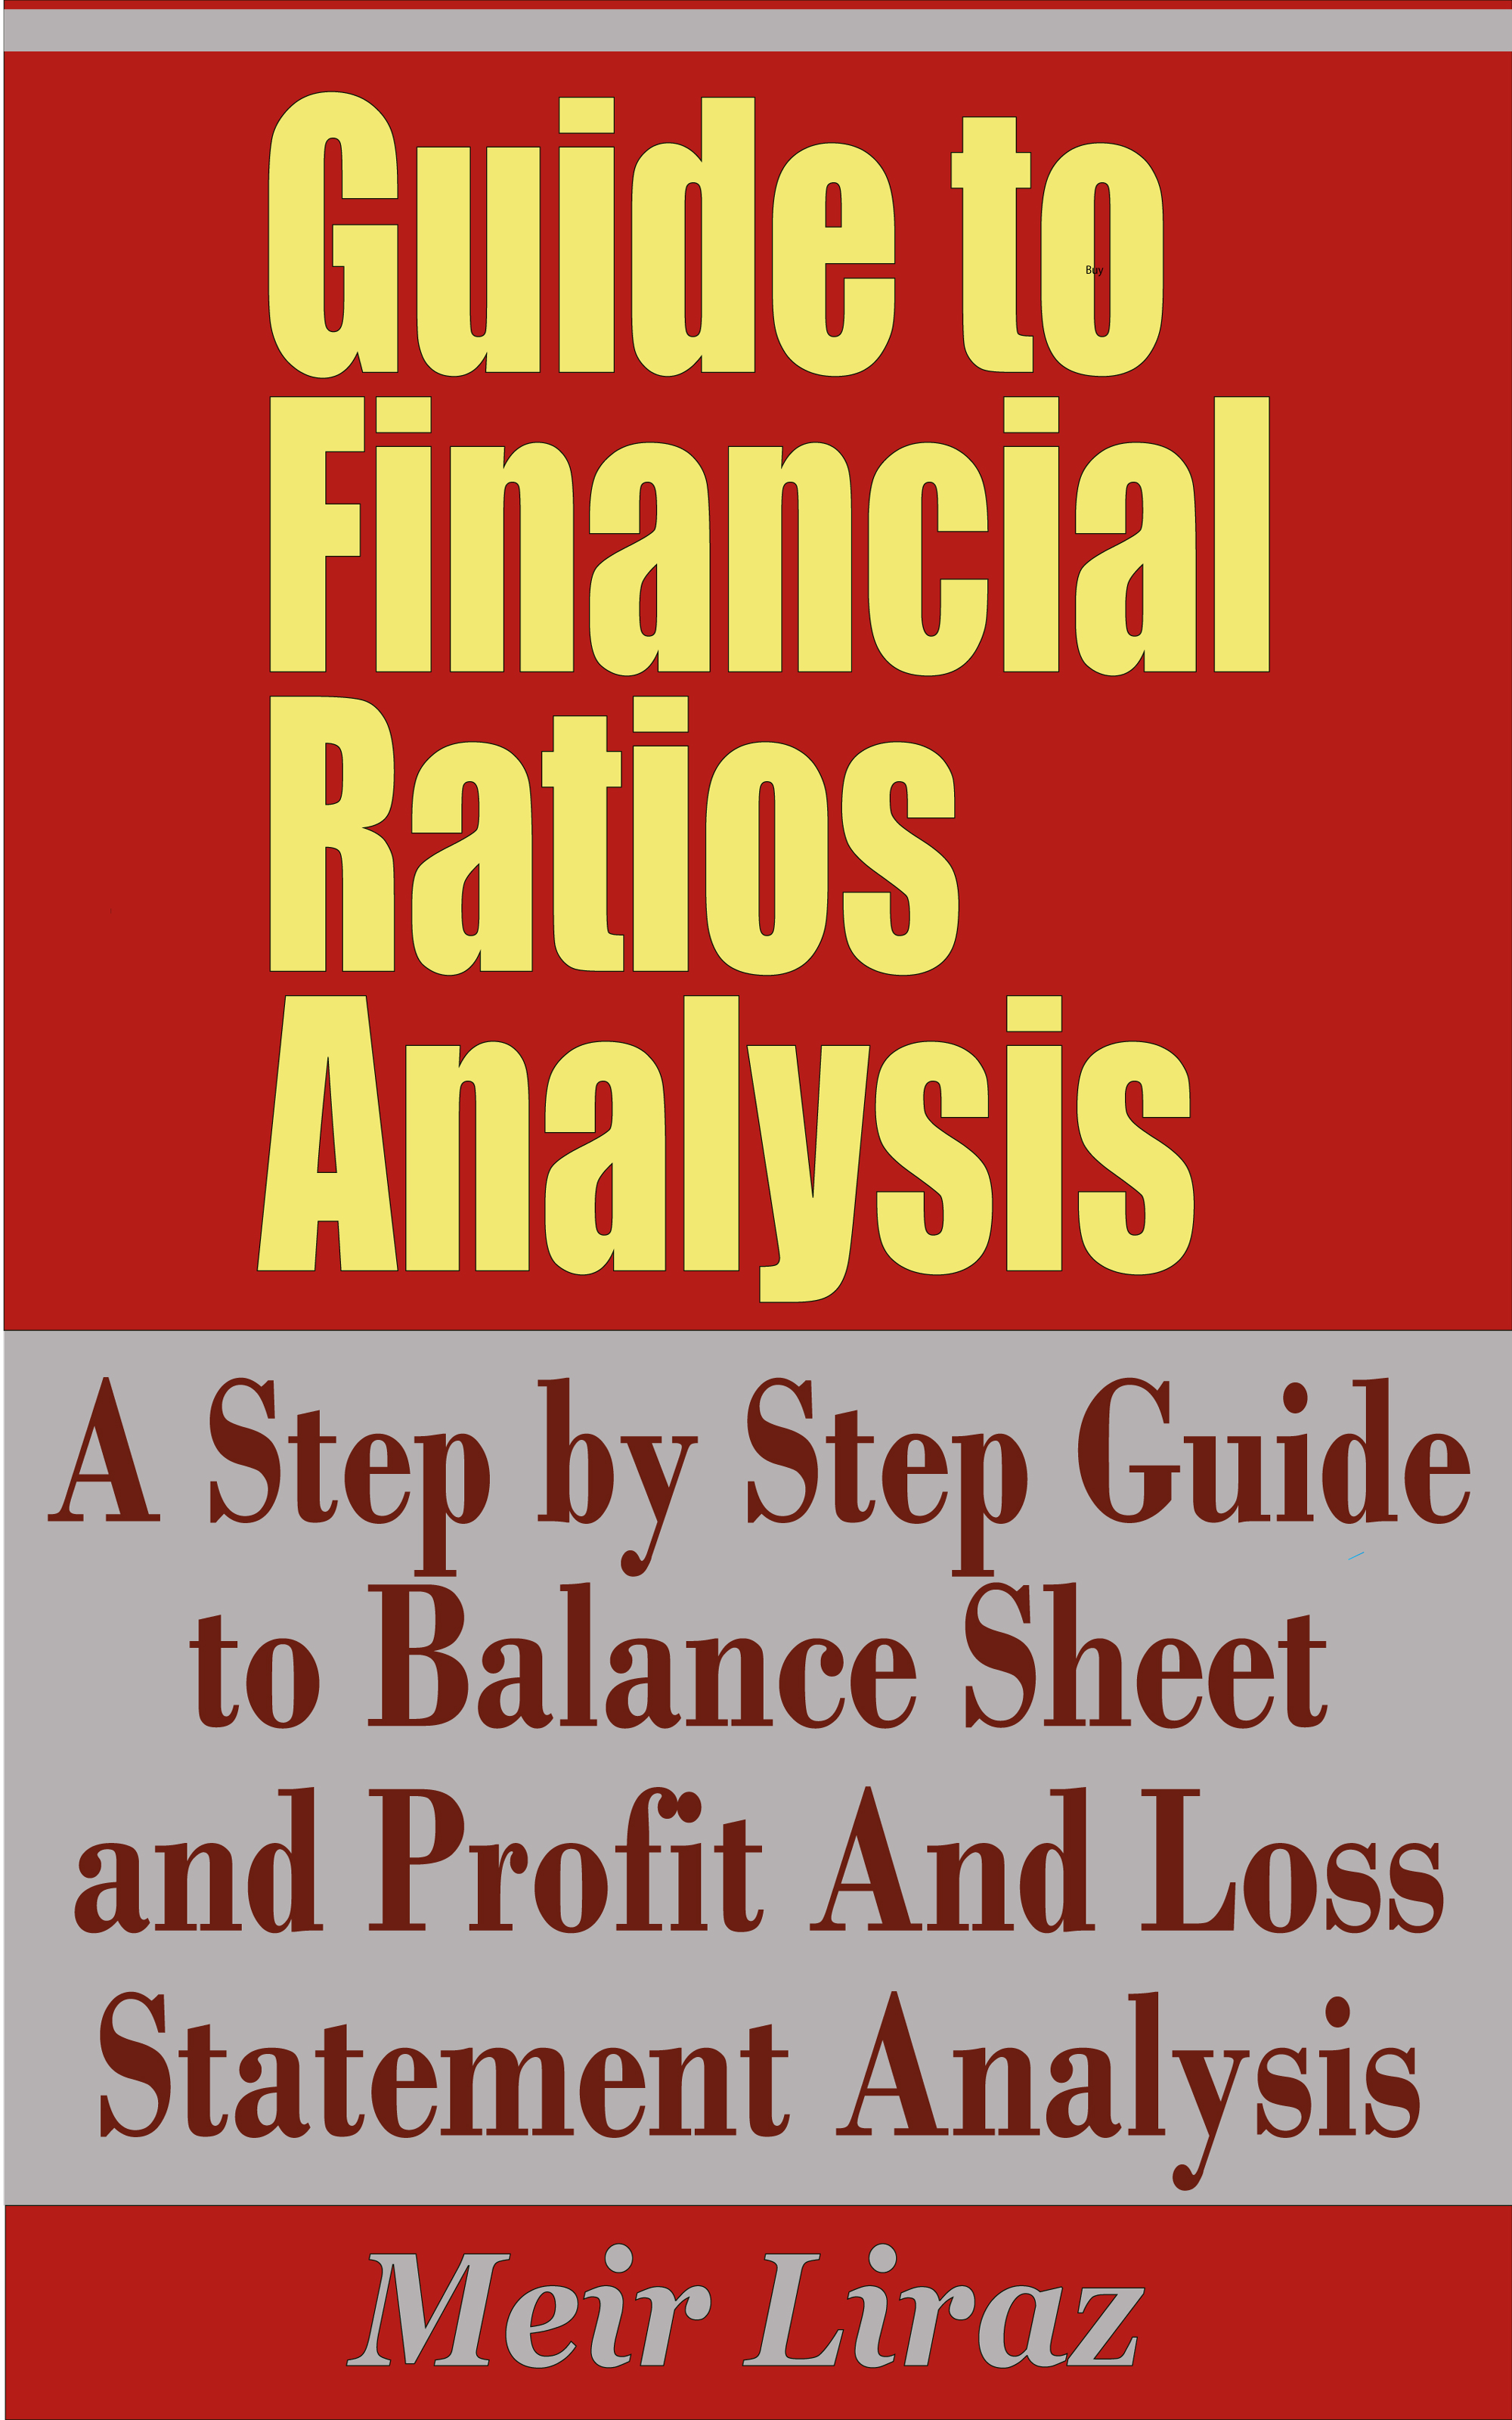 Meir Liraz - Guide to Financial Ratios Analysis - A Step by Step Guide to Balance Sheet and Profit and Loss Statement Analysis